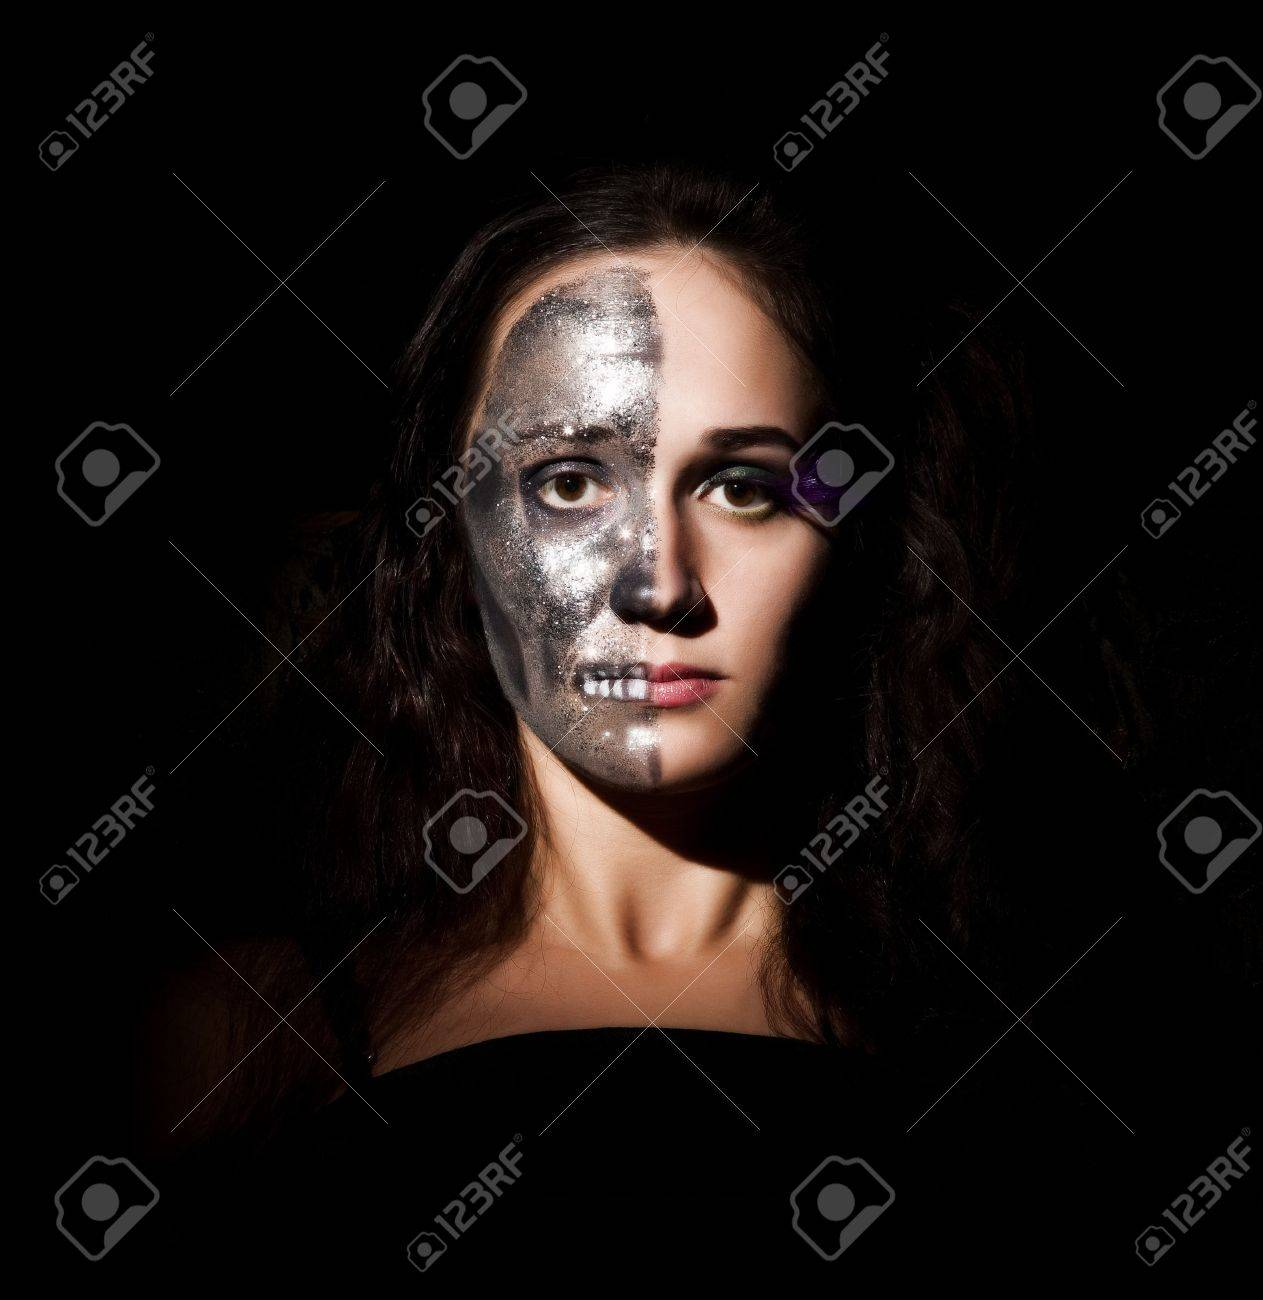 Two-faced Girl Looking To The Camera Stock Photo, Picture And ...